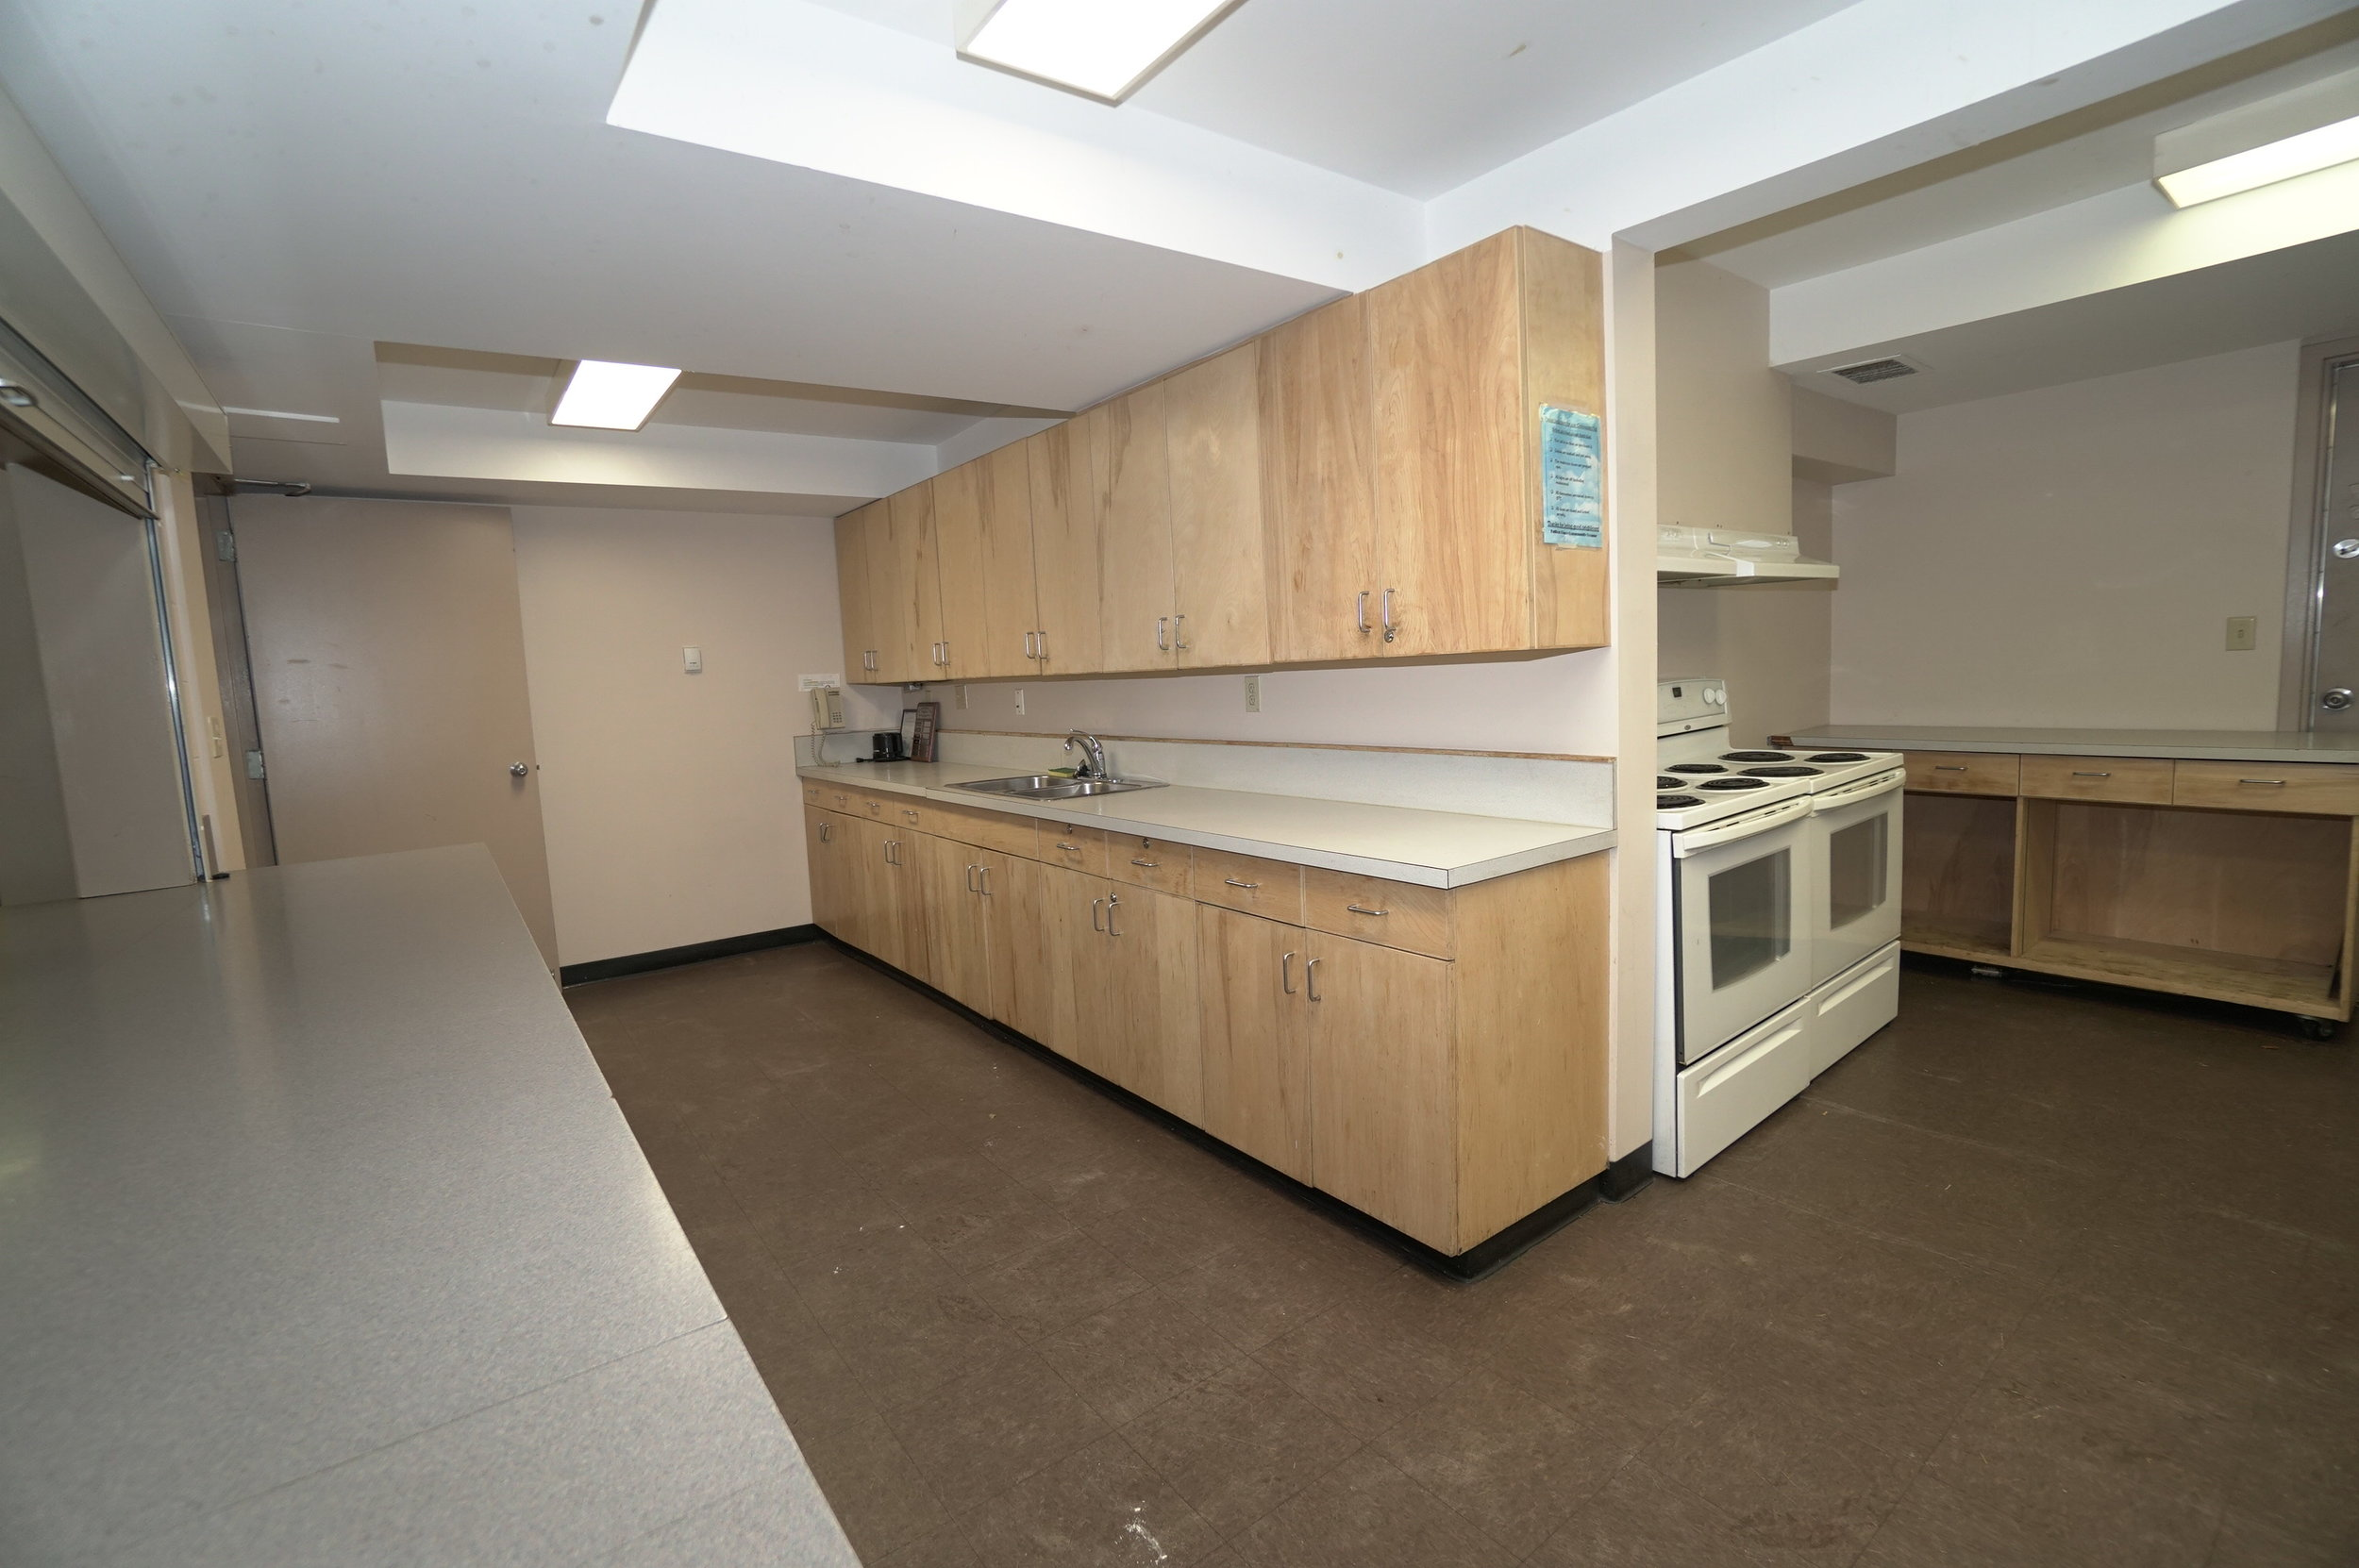 Fulton Place Hall Kitchen 02.JPG